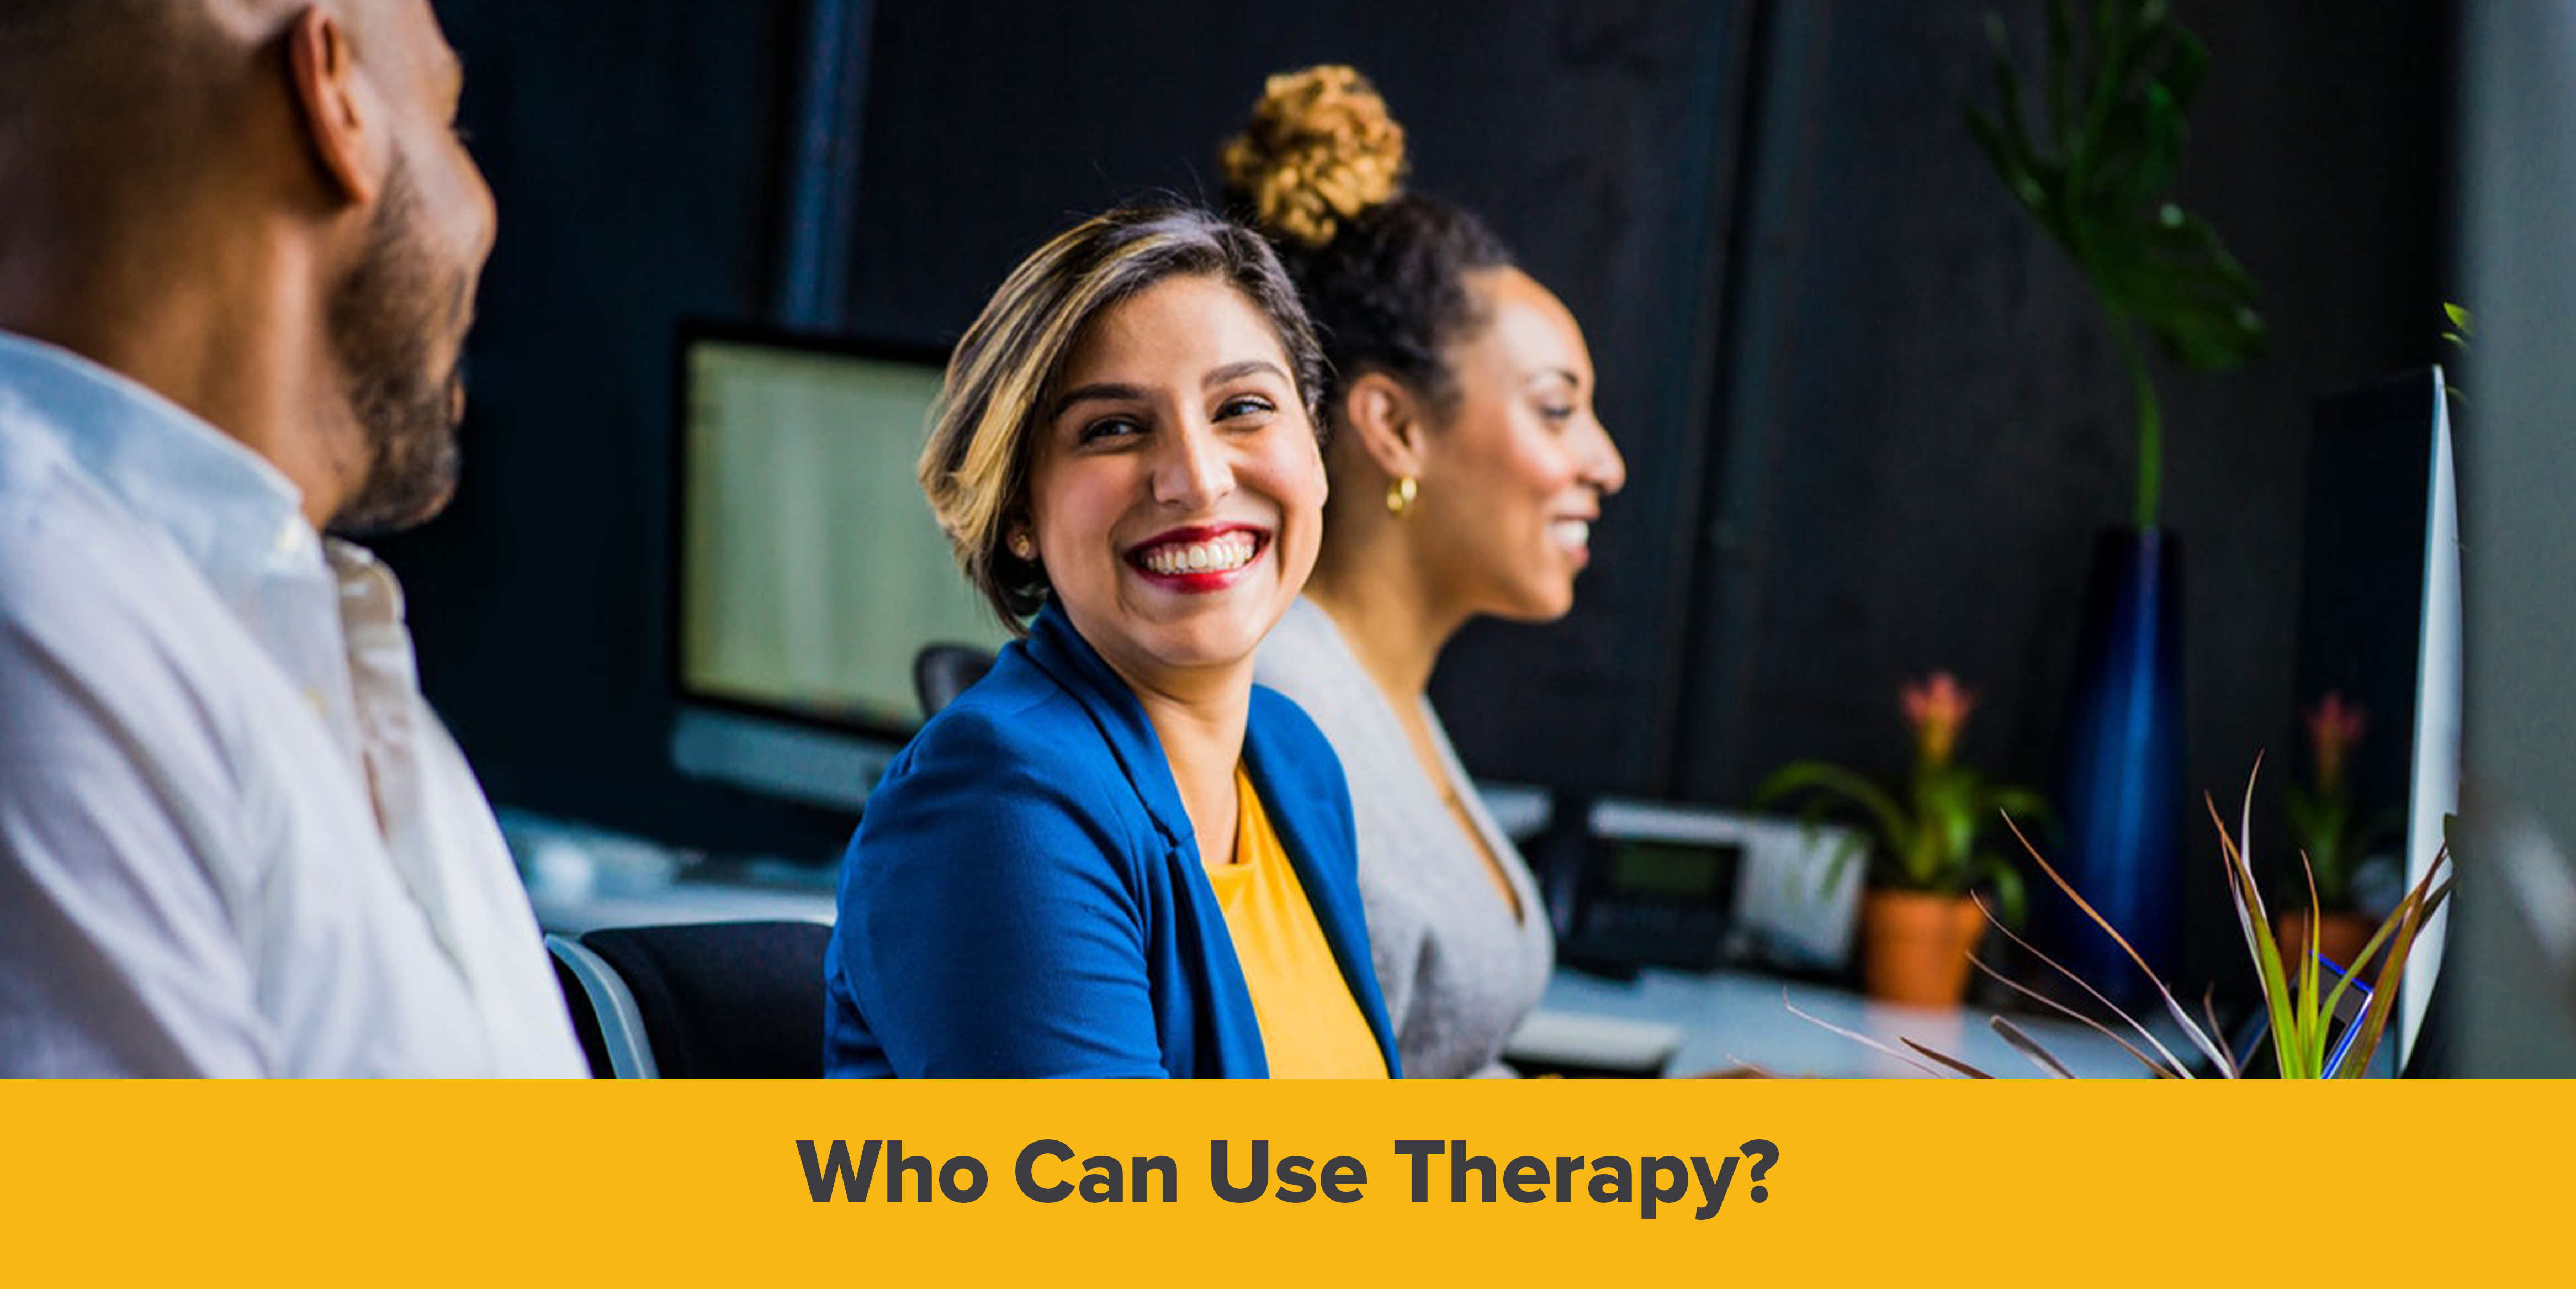 Who Can Use Therapy